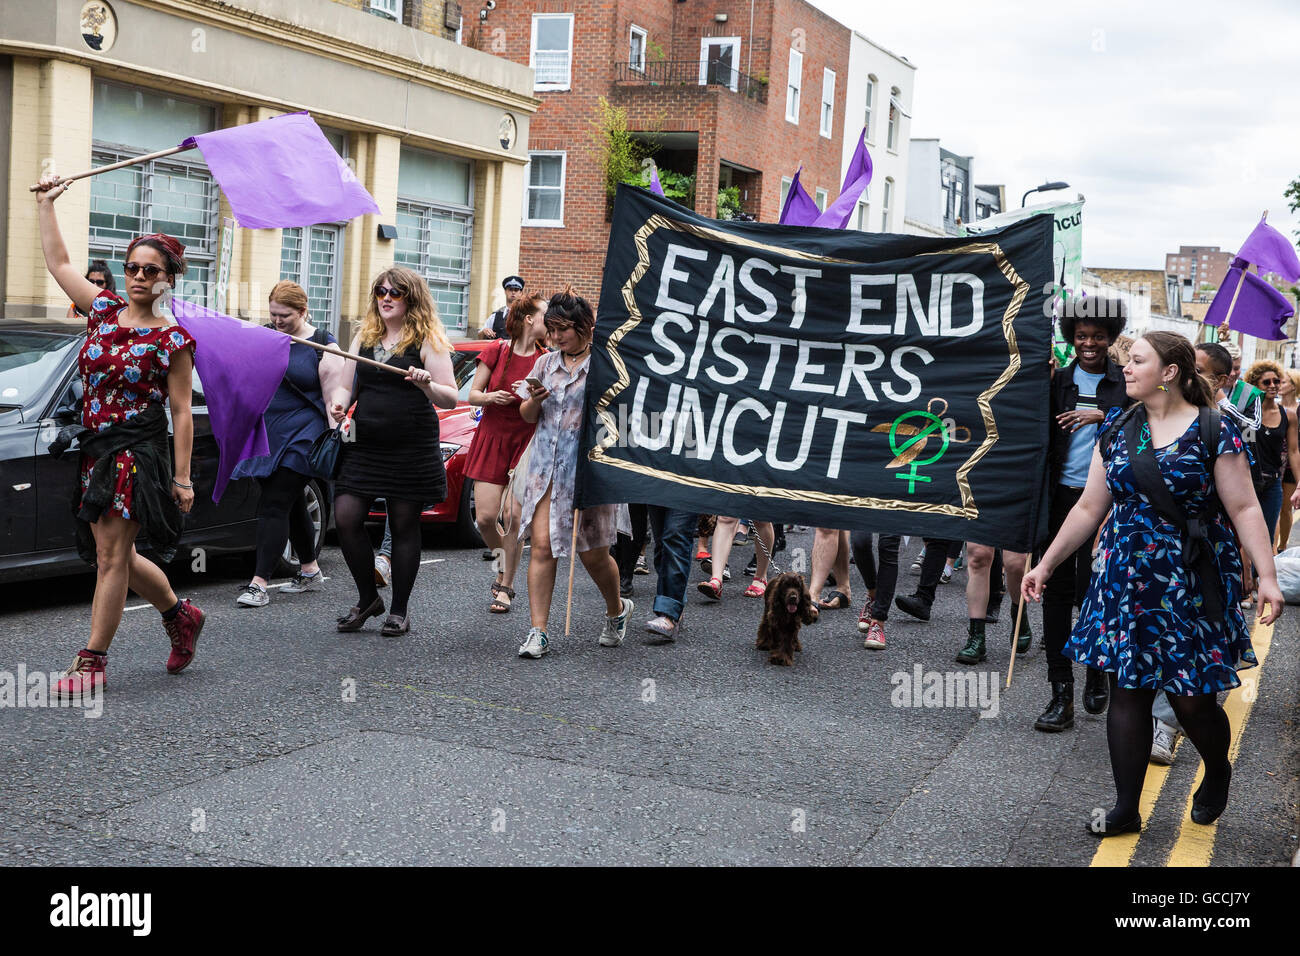 London, UK. 9th July, 2016. Feminist direct action group Sisters Uncut march in Hackney to call on both Hackney Council and the Government not to implement the Housing Act, to cease the demolition of council housing and to invest funds in both social housing and refuges for women fleeing domestic violence. The protest took the form of a march to a social housing block currently being occupied - a protest occupation - by Sisters Uncut. Credit:  Mark Kerrison/Alamy Live News Stock Photo